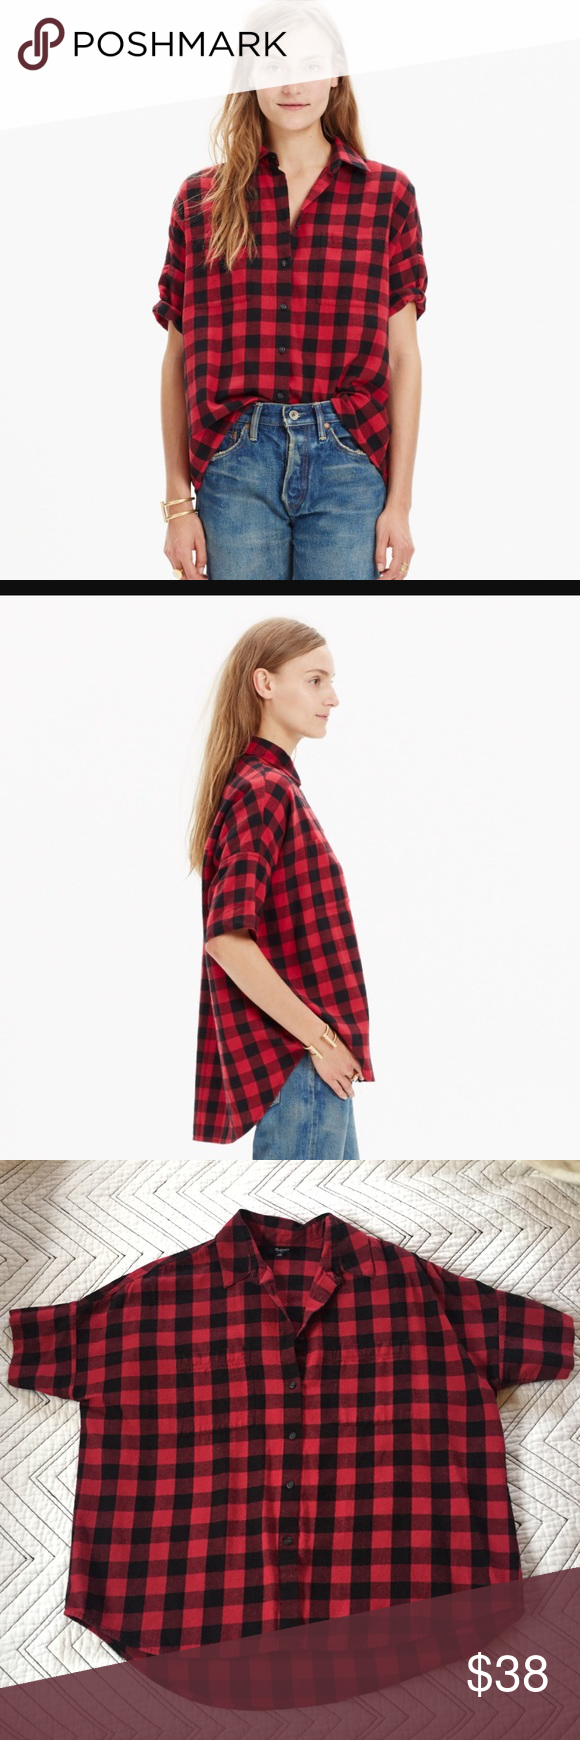 Red flannel shirt black jeans  Madewell Buffalo Check Courier Button Down Shirt  Flannel material